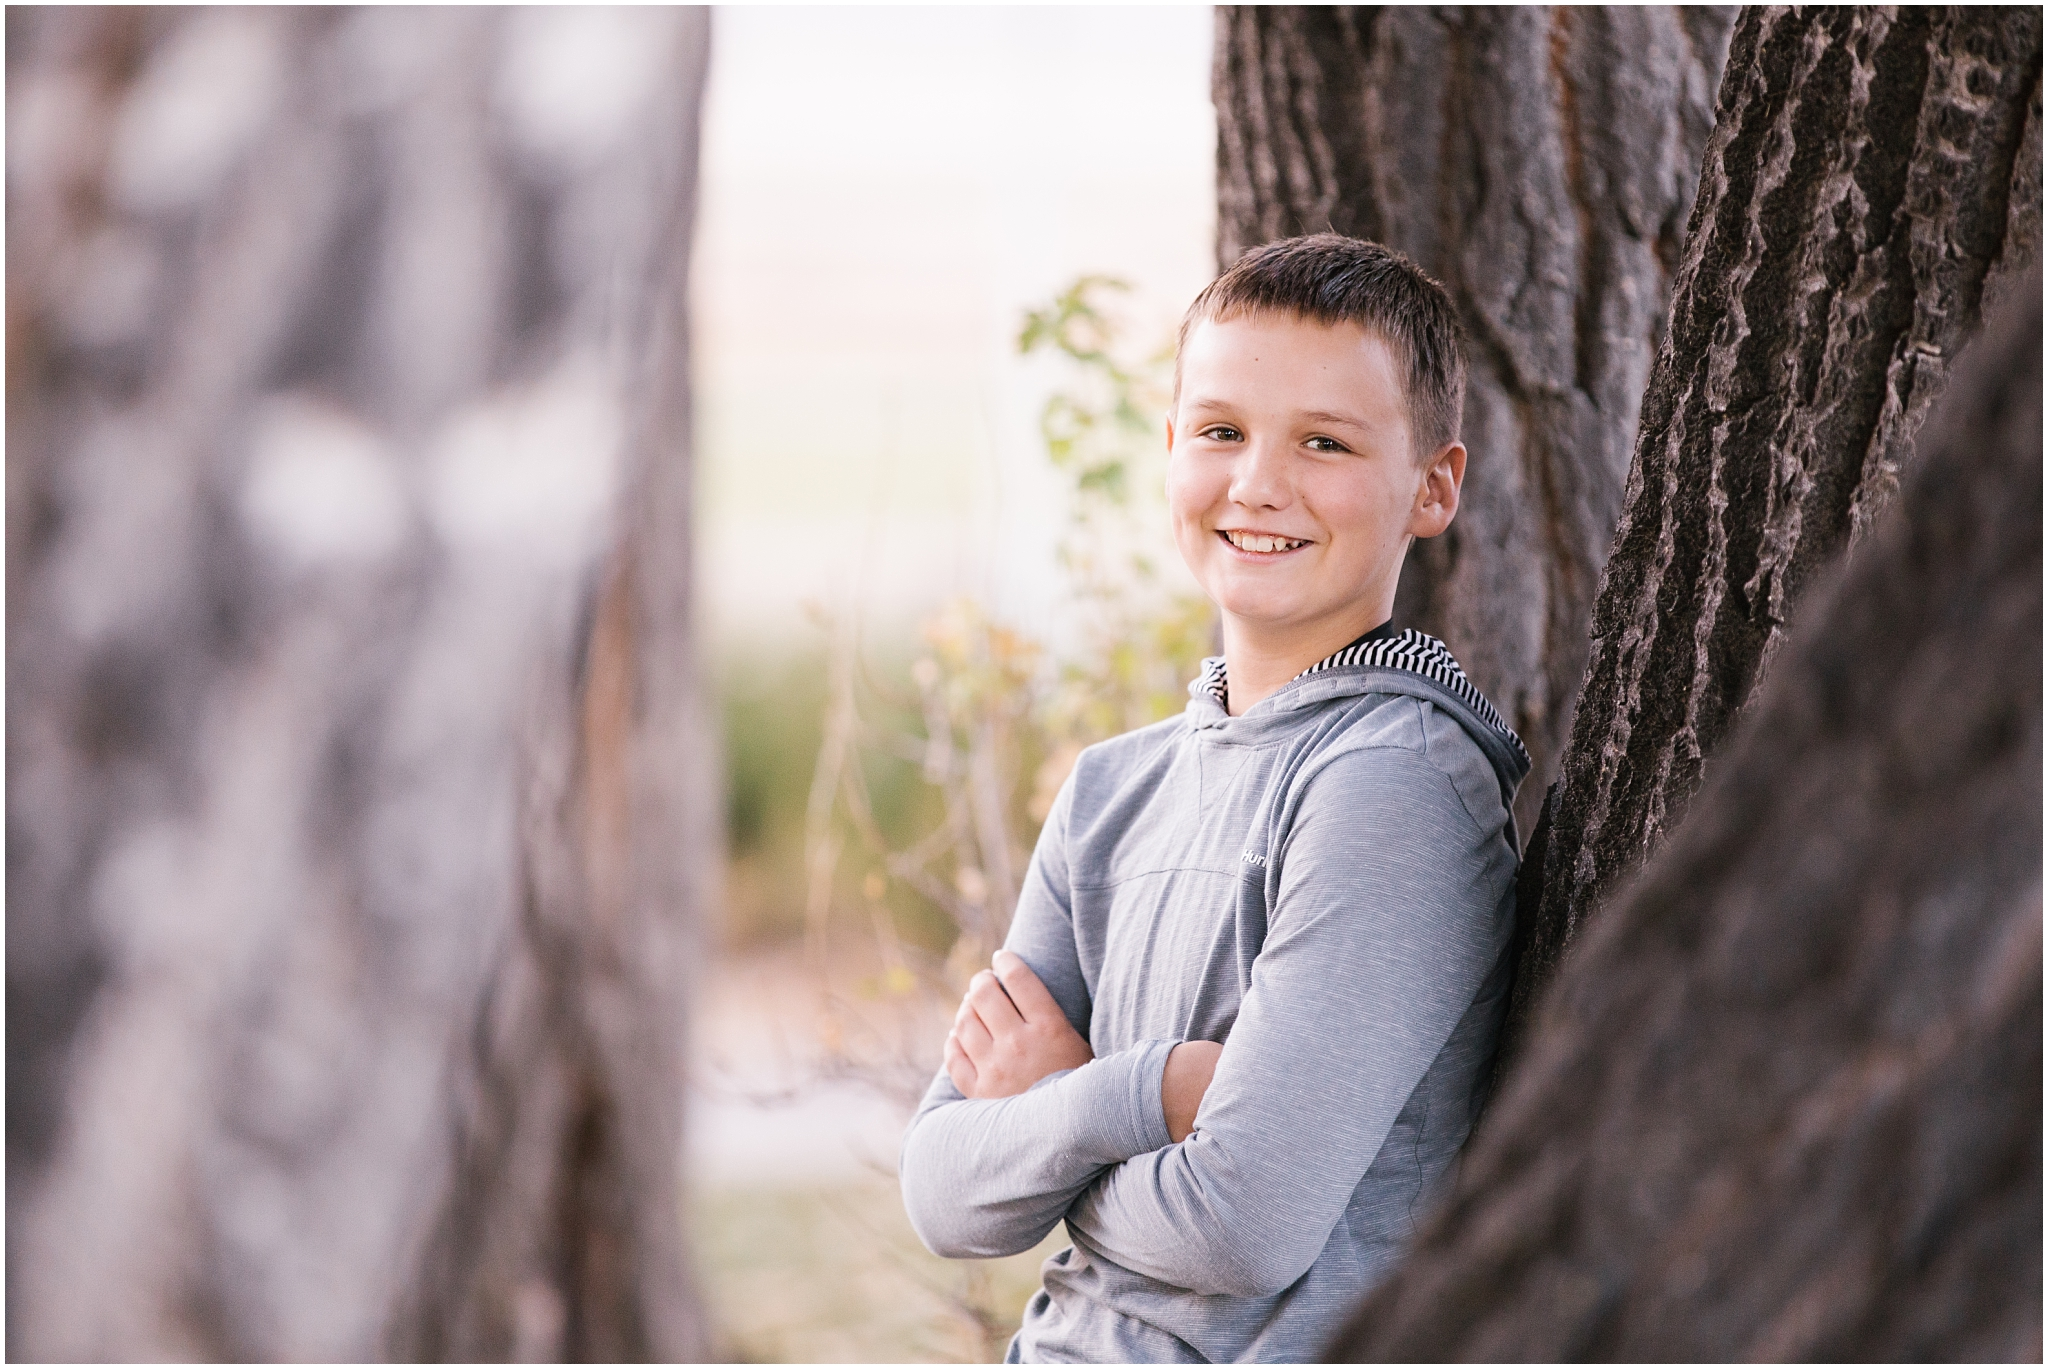 Fielding-67_Lizzie-B-Imagery-Utah-Family-Photographer-Central-Utah-Park-City-Salt-Lake-City.jpg